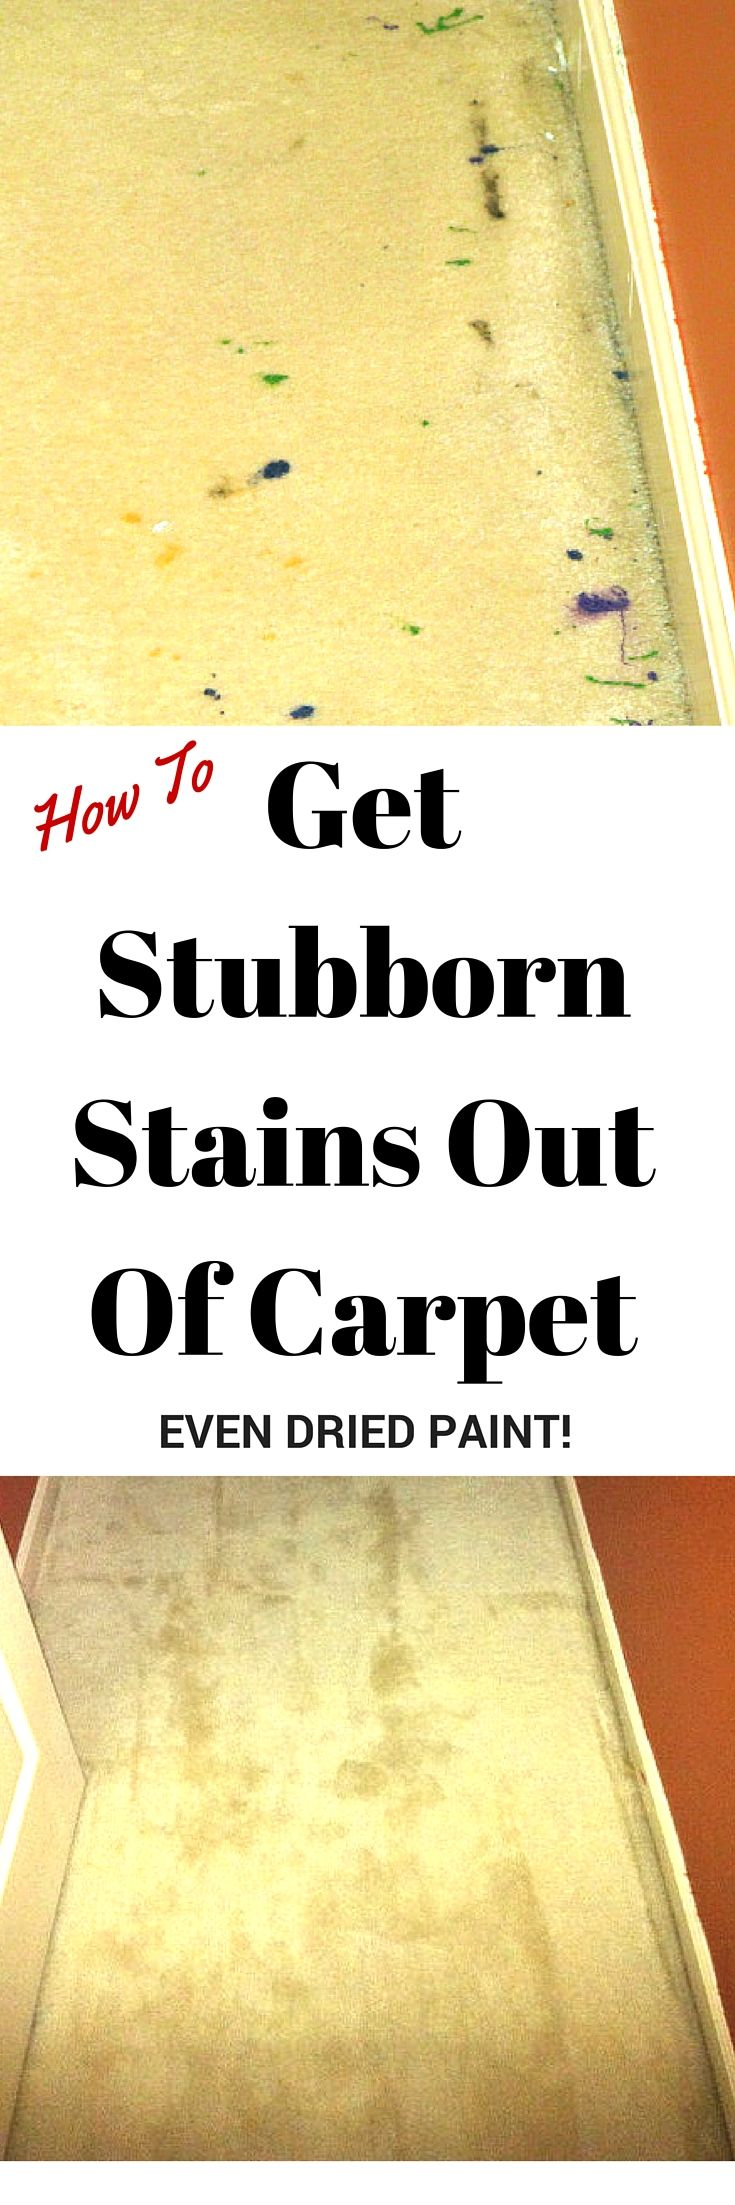 Wow This Really Does Work To Get Dried Paint Out Of Carpet It Also